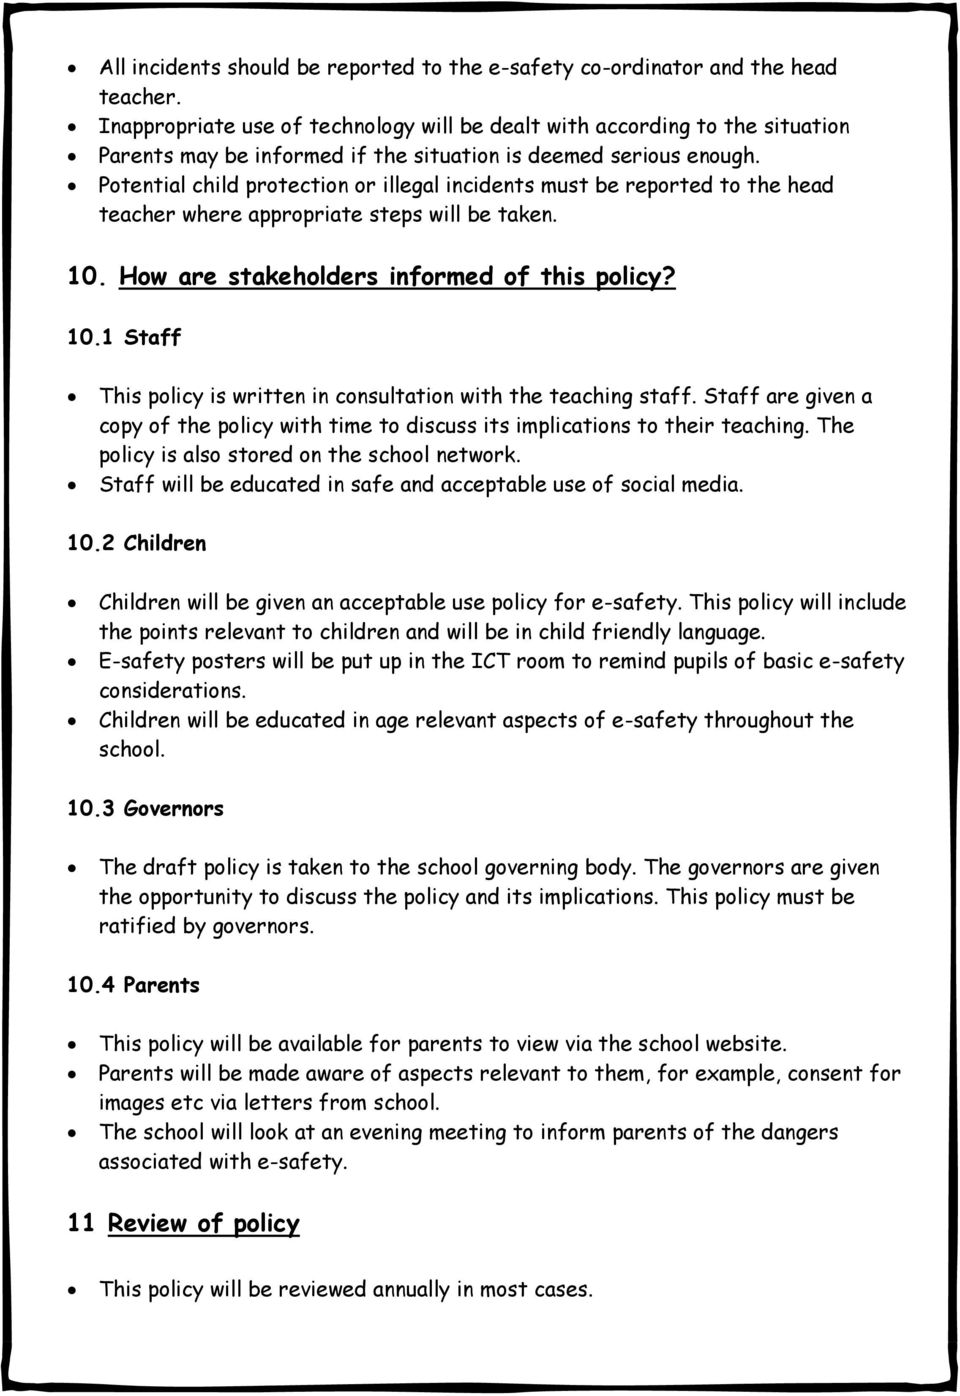 Potential child protection or illegal incidents must be reported to the head teacher where appropriate steps will be taken. 10. How are stakeholders informed of this policy? 10.1 Staff This policy is written in consultation with the teaching staff.